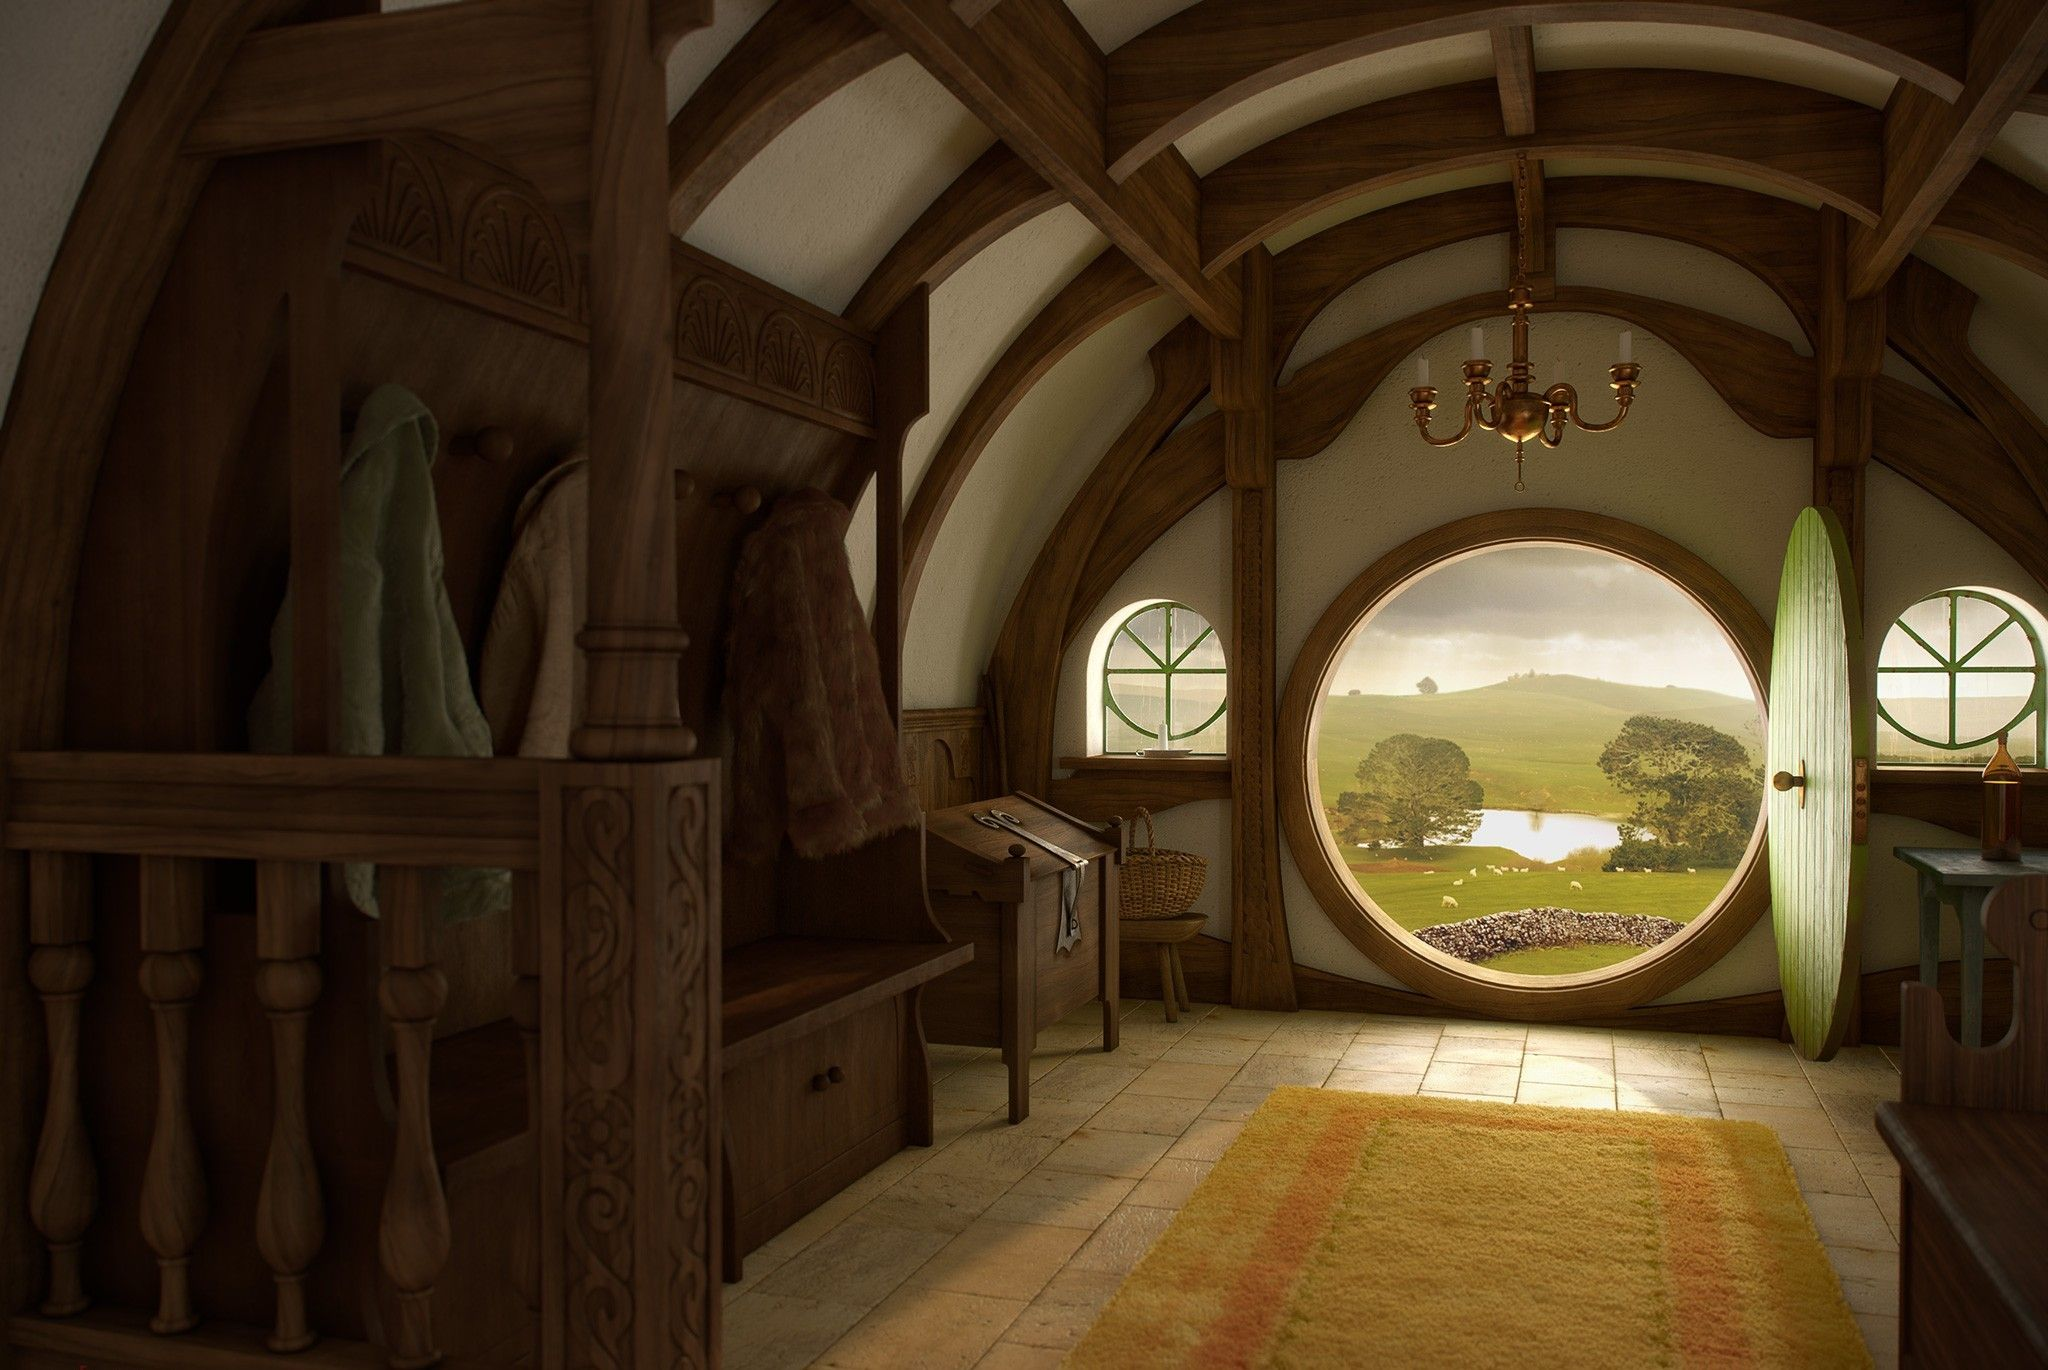 Hobbit width hole home interior door wallpaper for Porta hobbit